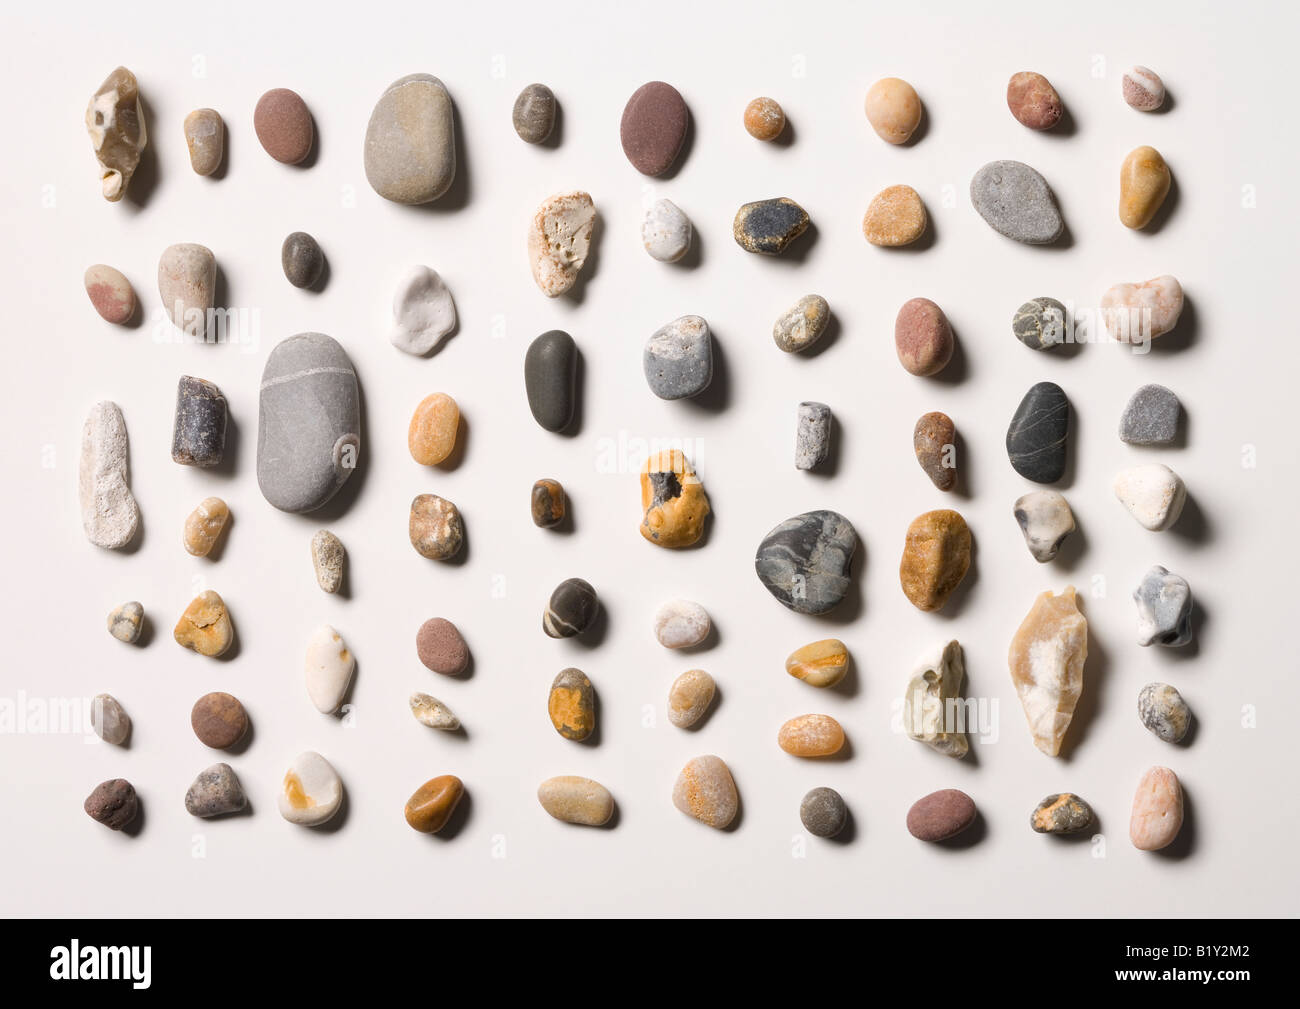 70 pebbles from a beach - Stock Image